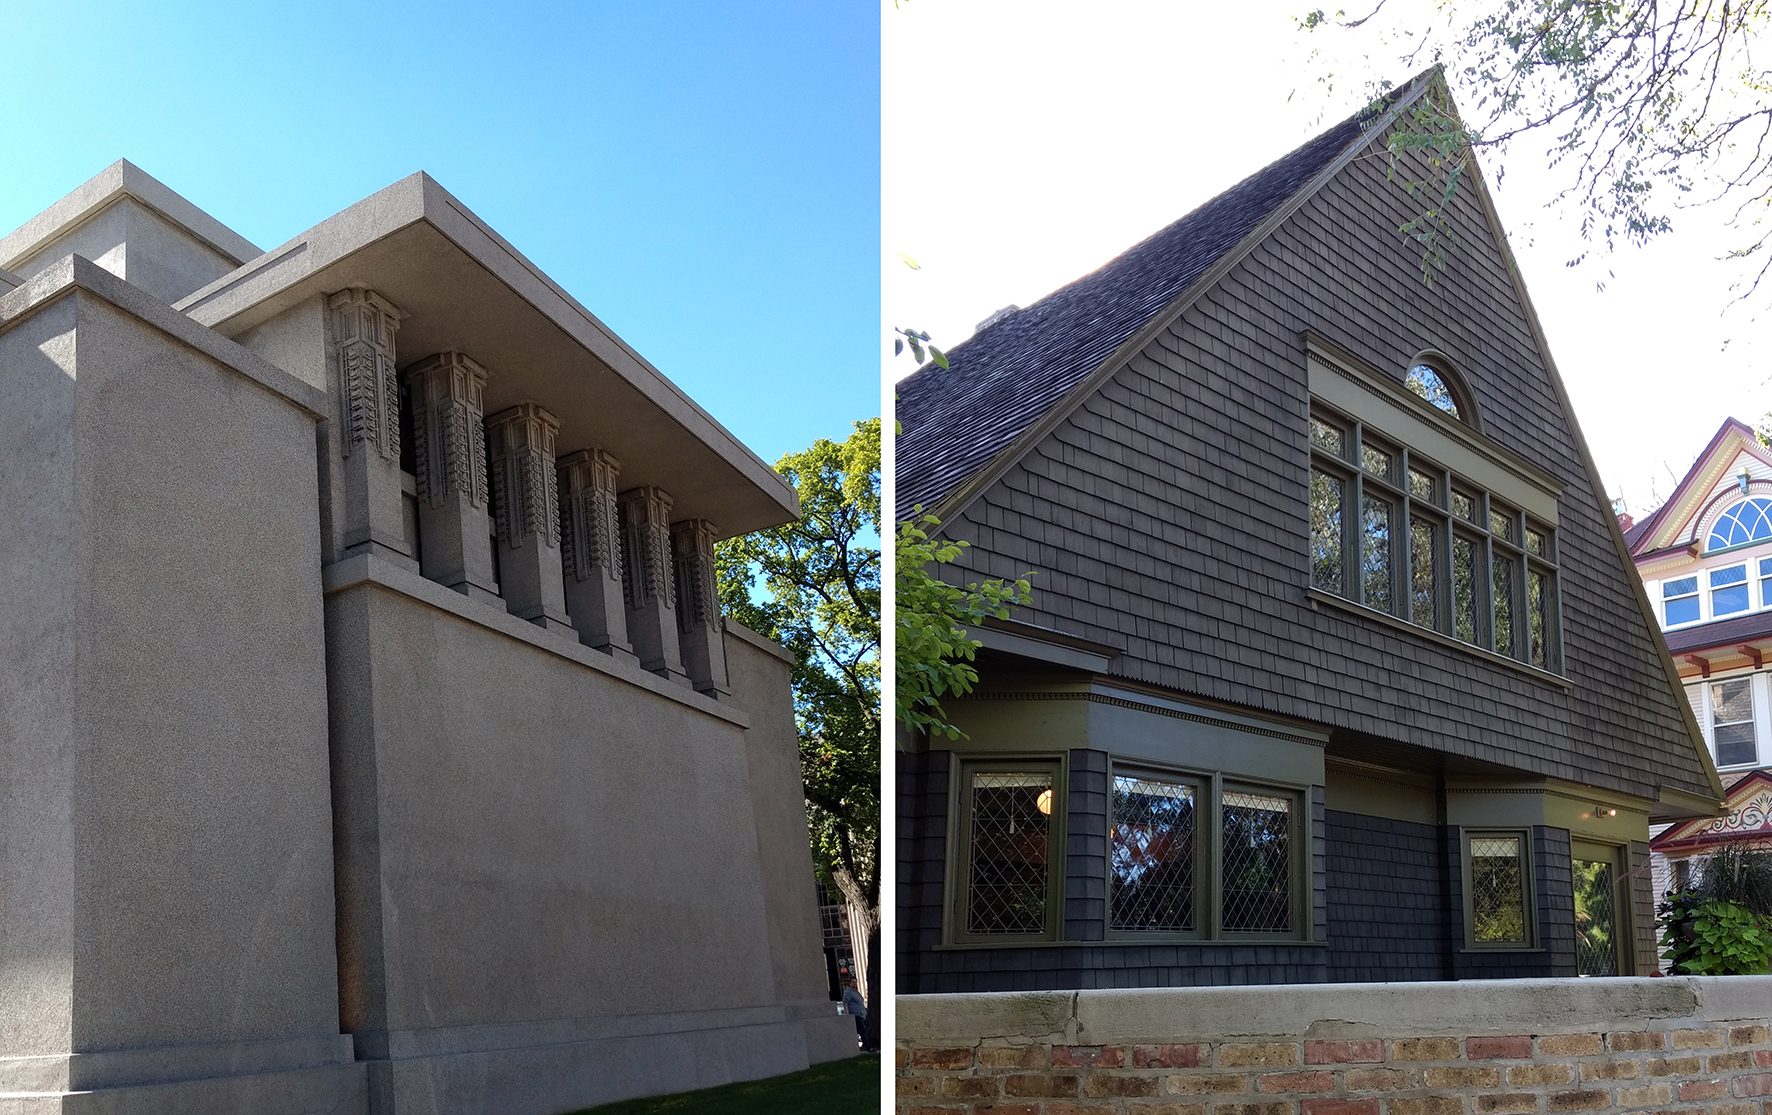 Frank Lloyd Wright works are prolific throughout Oak Park – the highlights being the iconic Unity Temple and his own home and studio (just a block away from each other)